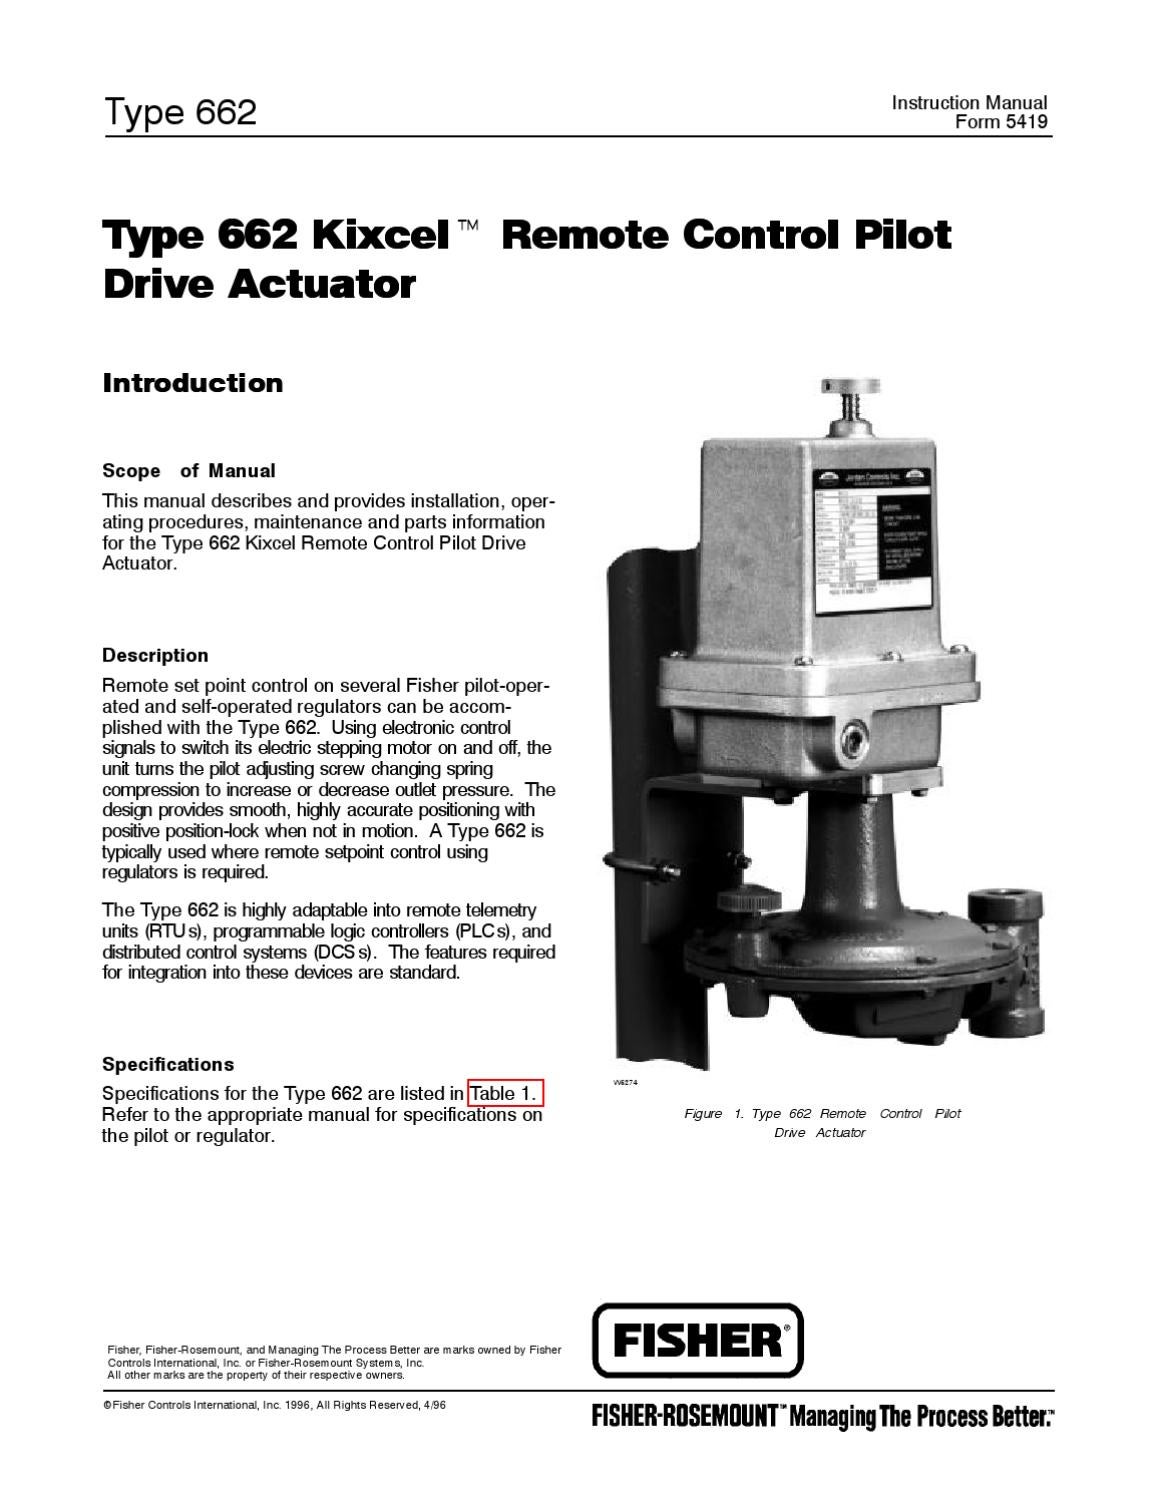 662 instruction manual by rmc process controls filtration inc 662 instruction manual by rmc process controls filtration inc issuu publicscrutiny Image collections